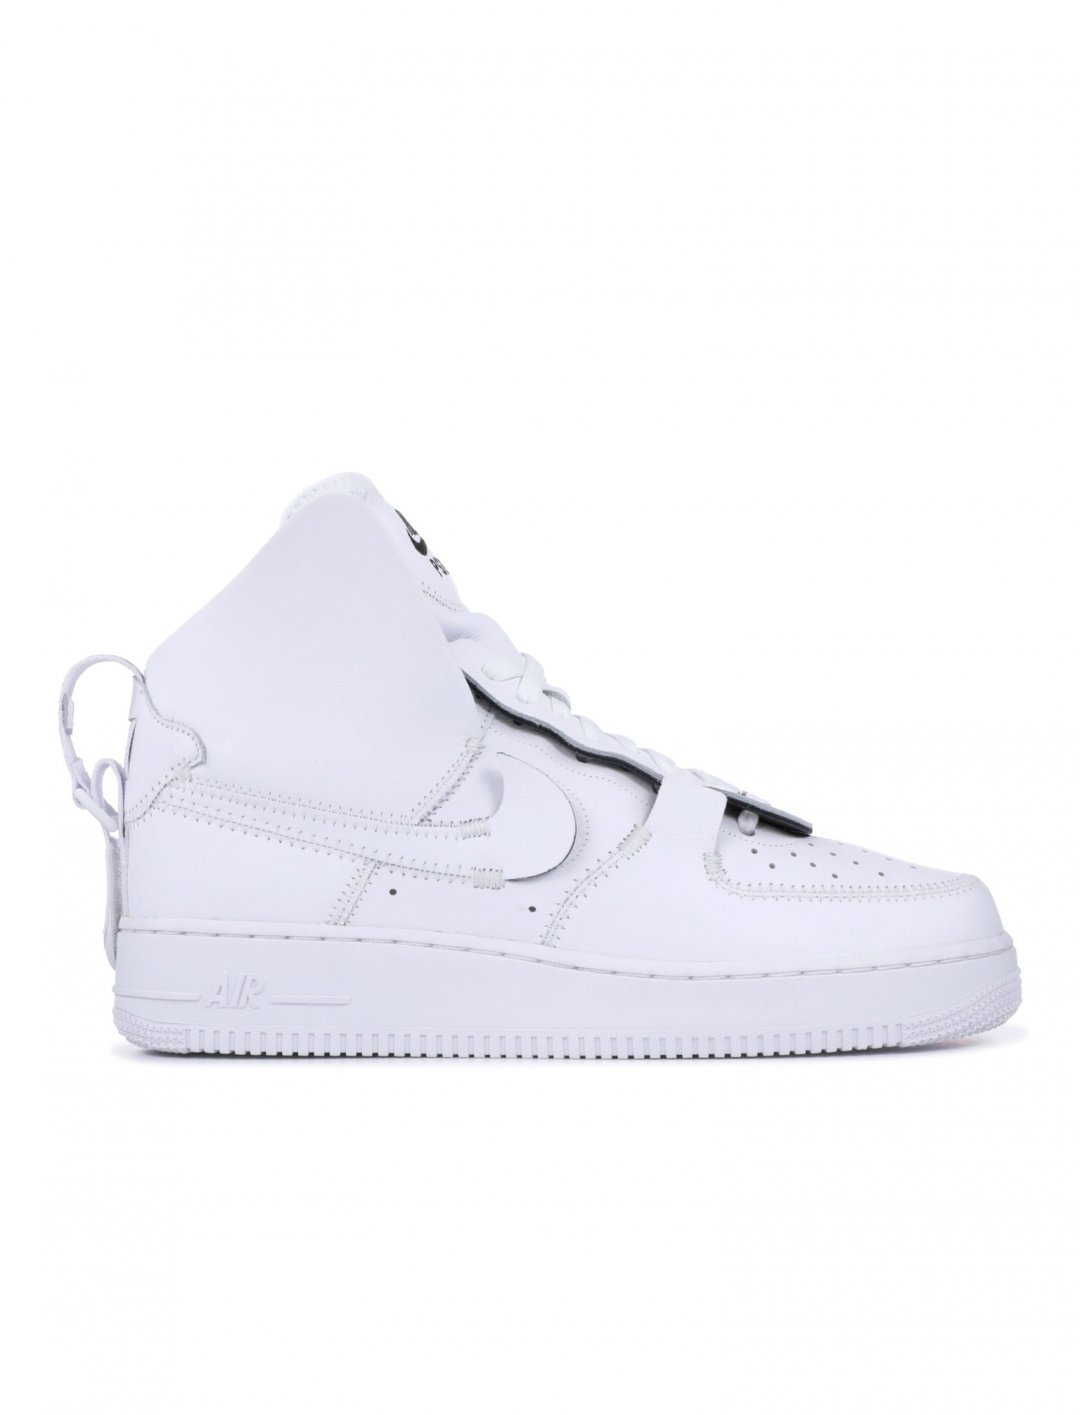 "Air Force 1 High Sneakers {""id"":12,""product_section_id"":1,""name"":""Shoes"",""order"":12} PSNY x Nike"